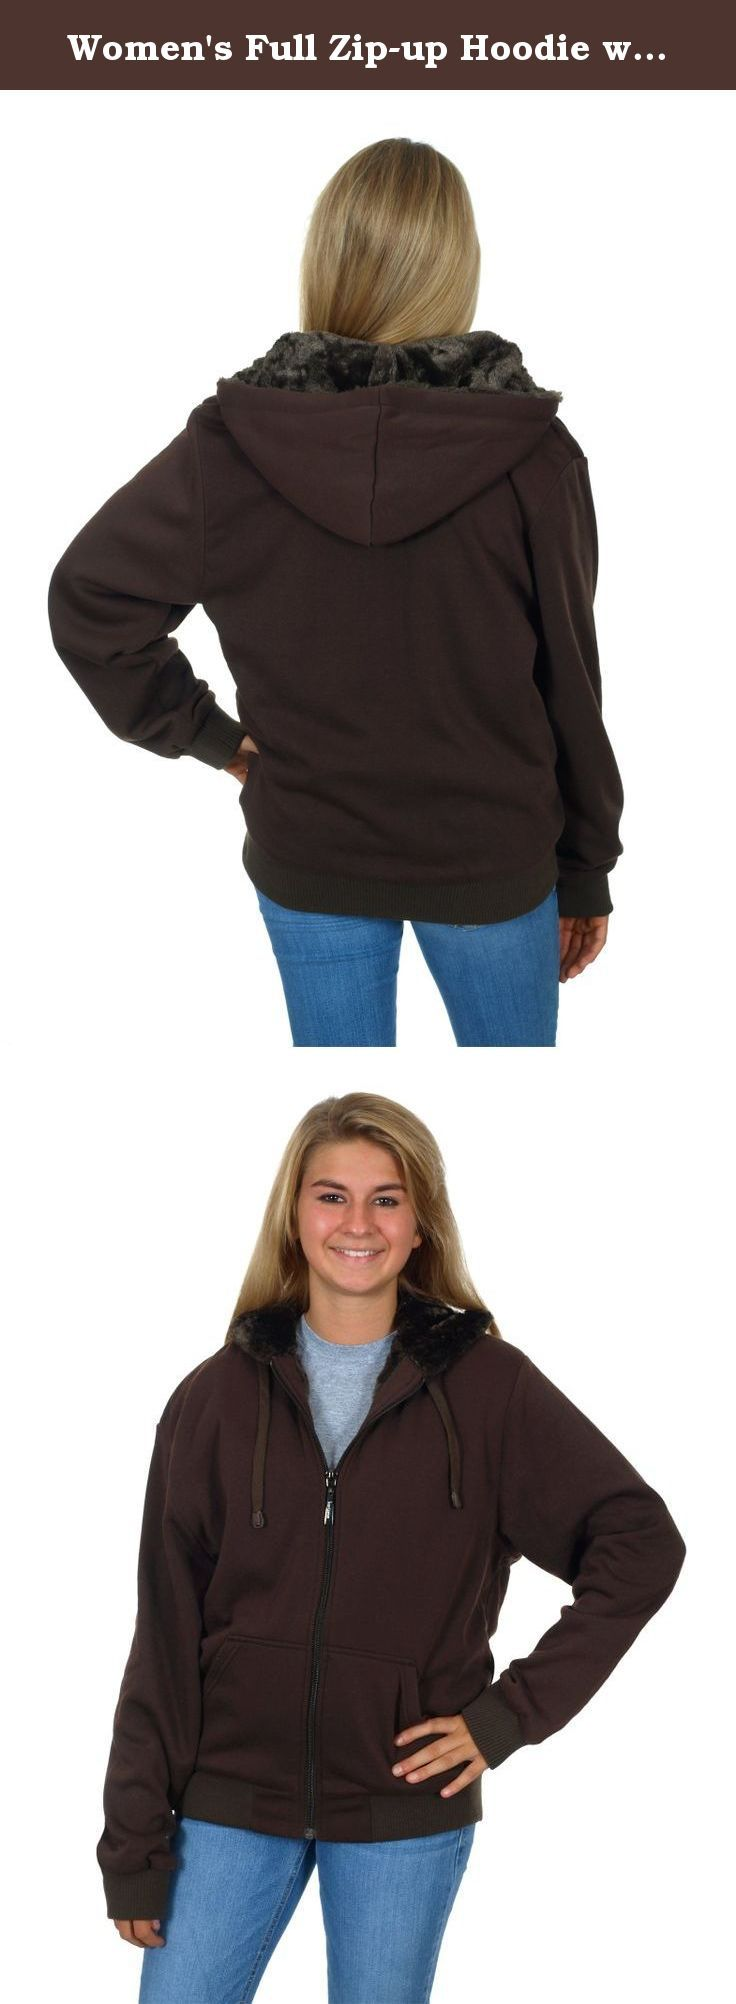 Women's Full Zip-up Hoodie with Shimmer Fleece Lining (X-Large, Brown). Women's Full Zip-up Hoodie with Shimmer Fleece Lining. This women's hoodie features a full zip-up front, ultra soft shimmer fleece lined body and hood, hood draw cord, 2 front hand pockets and stretch fit cuffs and waistband.